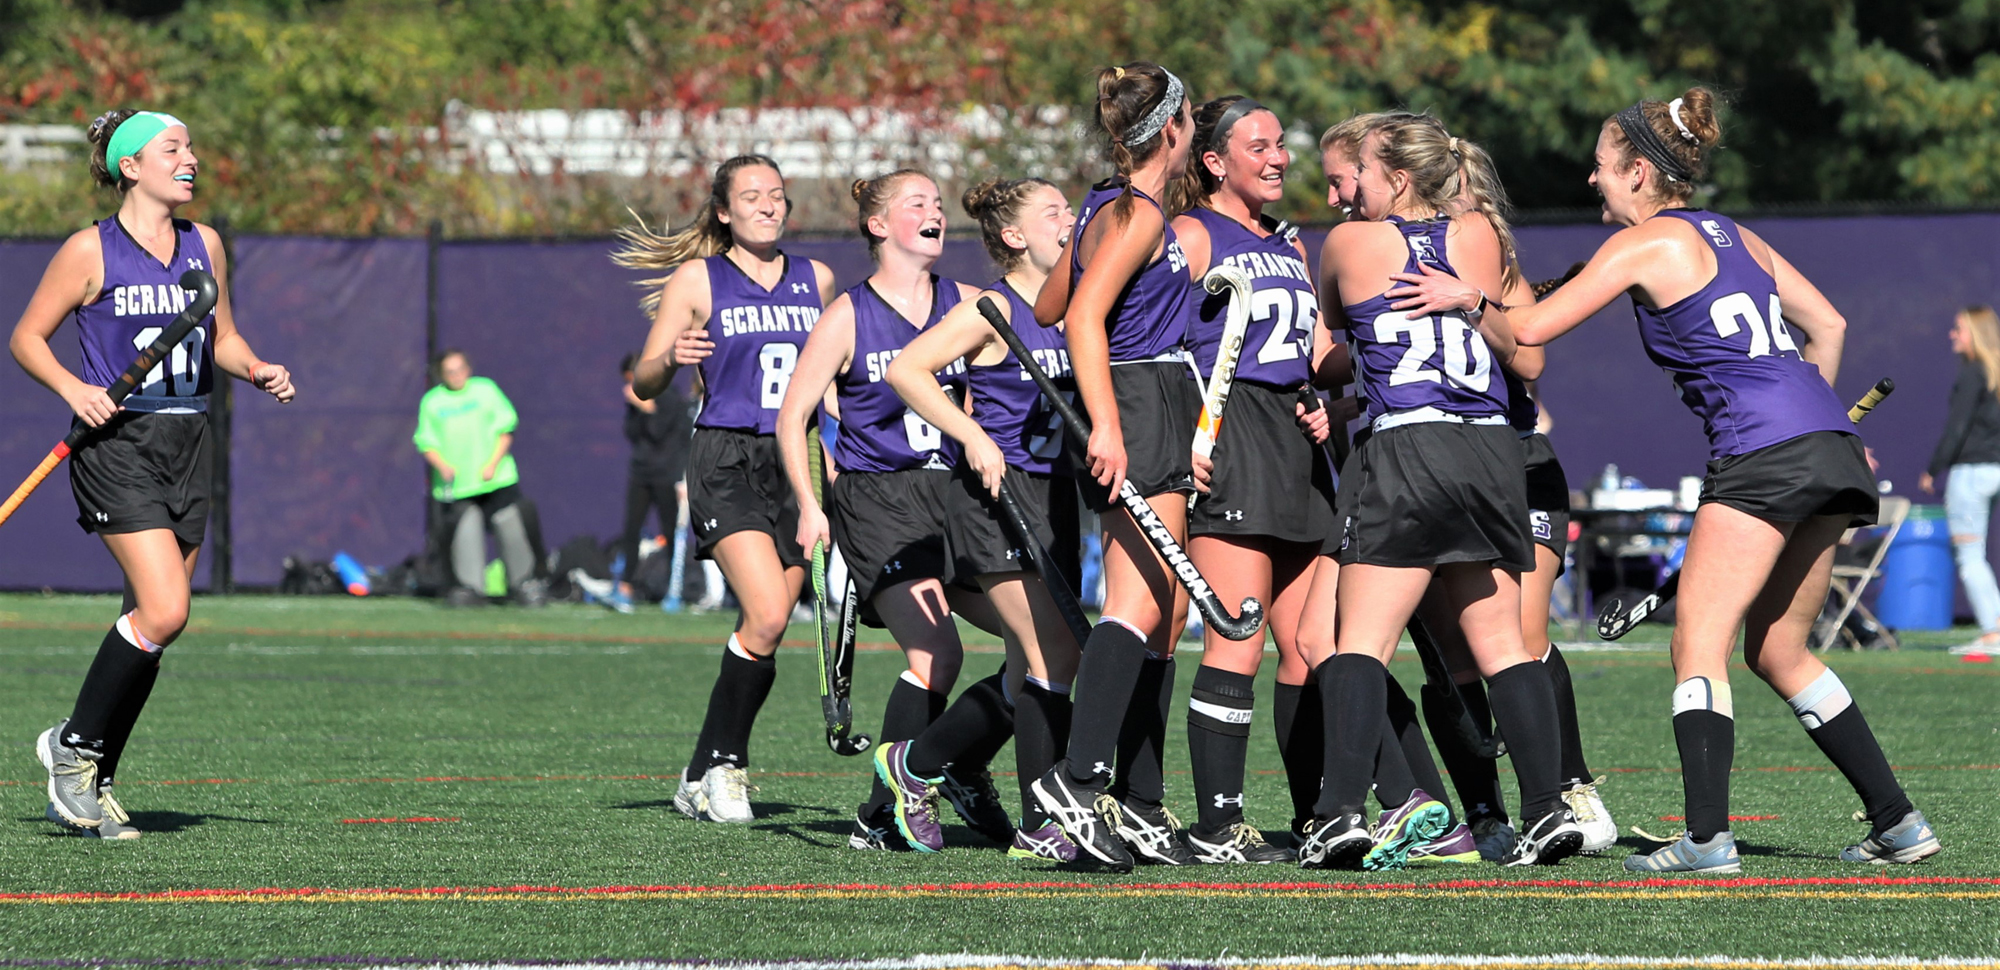 The University of Scranton field hockey team will host MIT in an NCAA First Round Game on Wednesday afternoon at Weiss Field at 3 p.m. © Photo by Timothy R. Dougherty / doubleeaglephotography.com